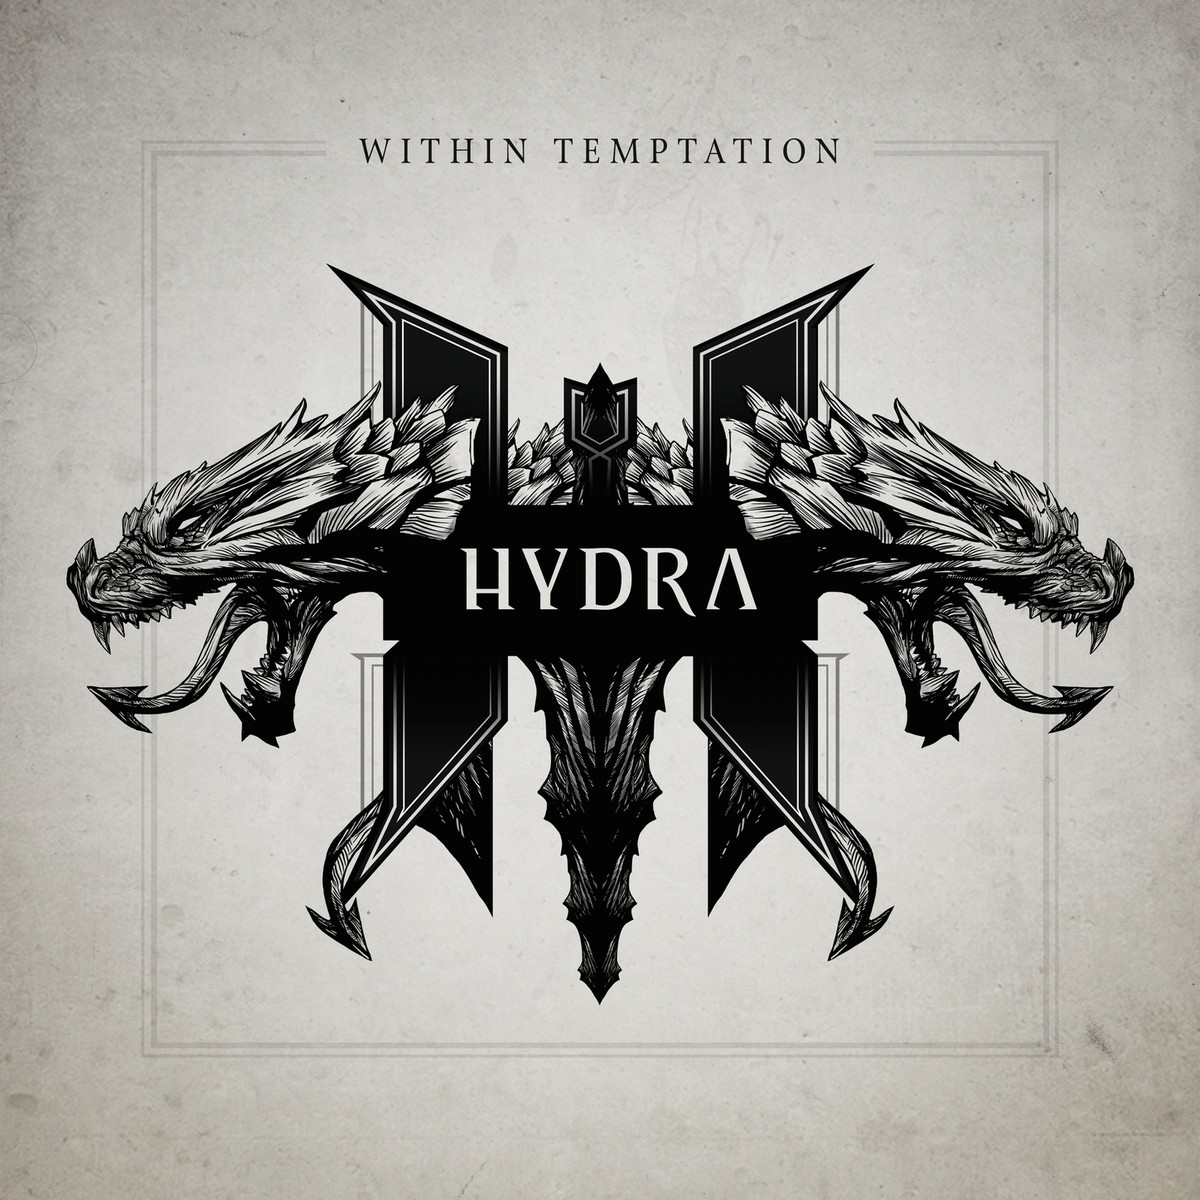 Within Temptation – Hydra